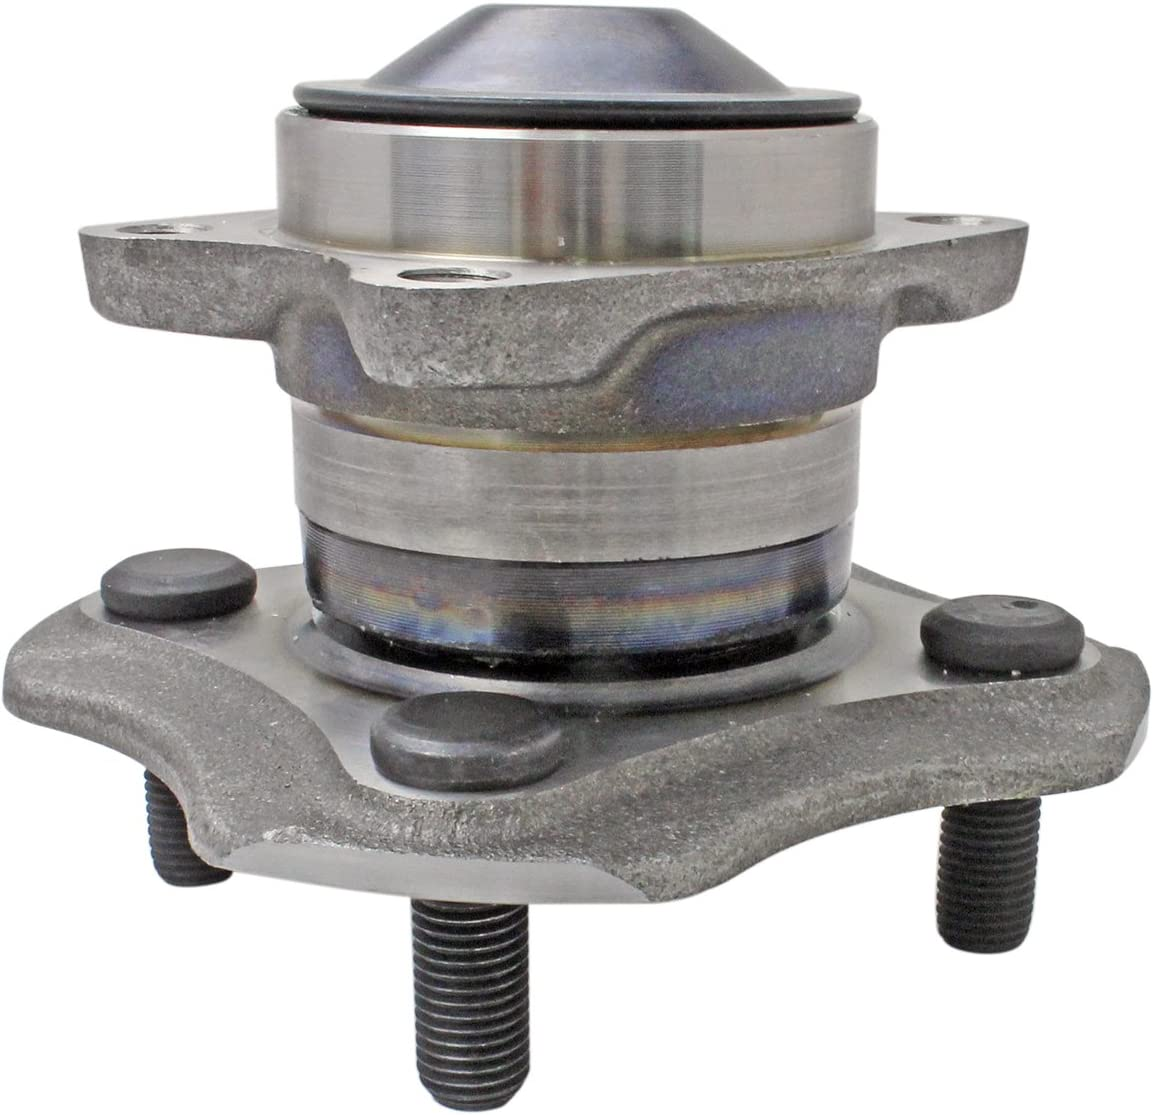 CRS NT512210 New Wheel Bearing Hub Left Piece Sale Regular store SALE% OFF Assembly 1 Rear